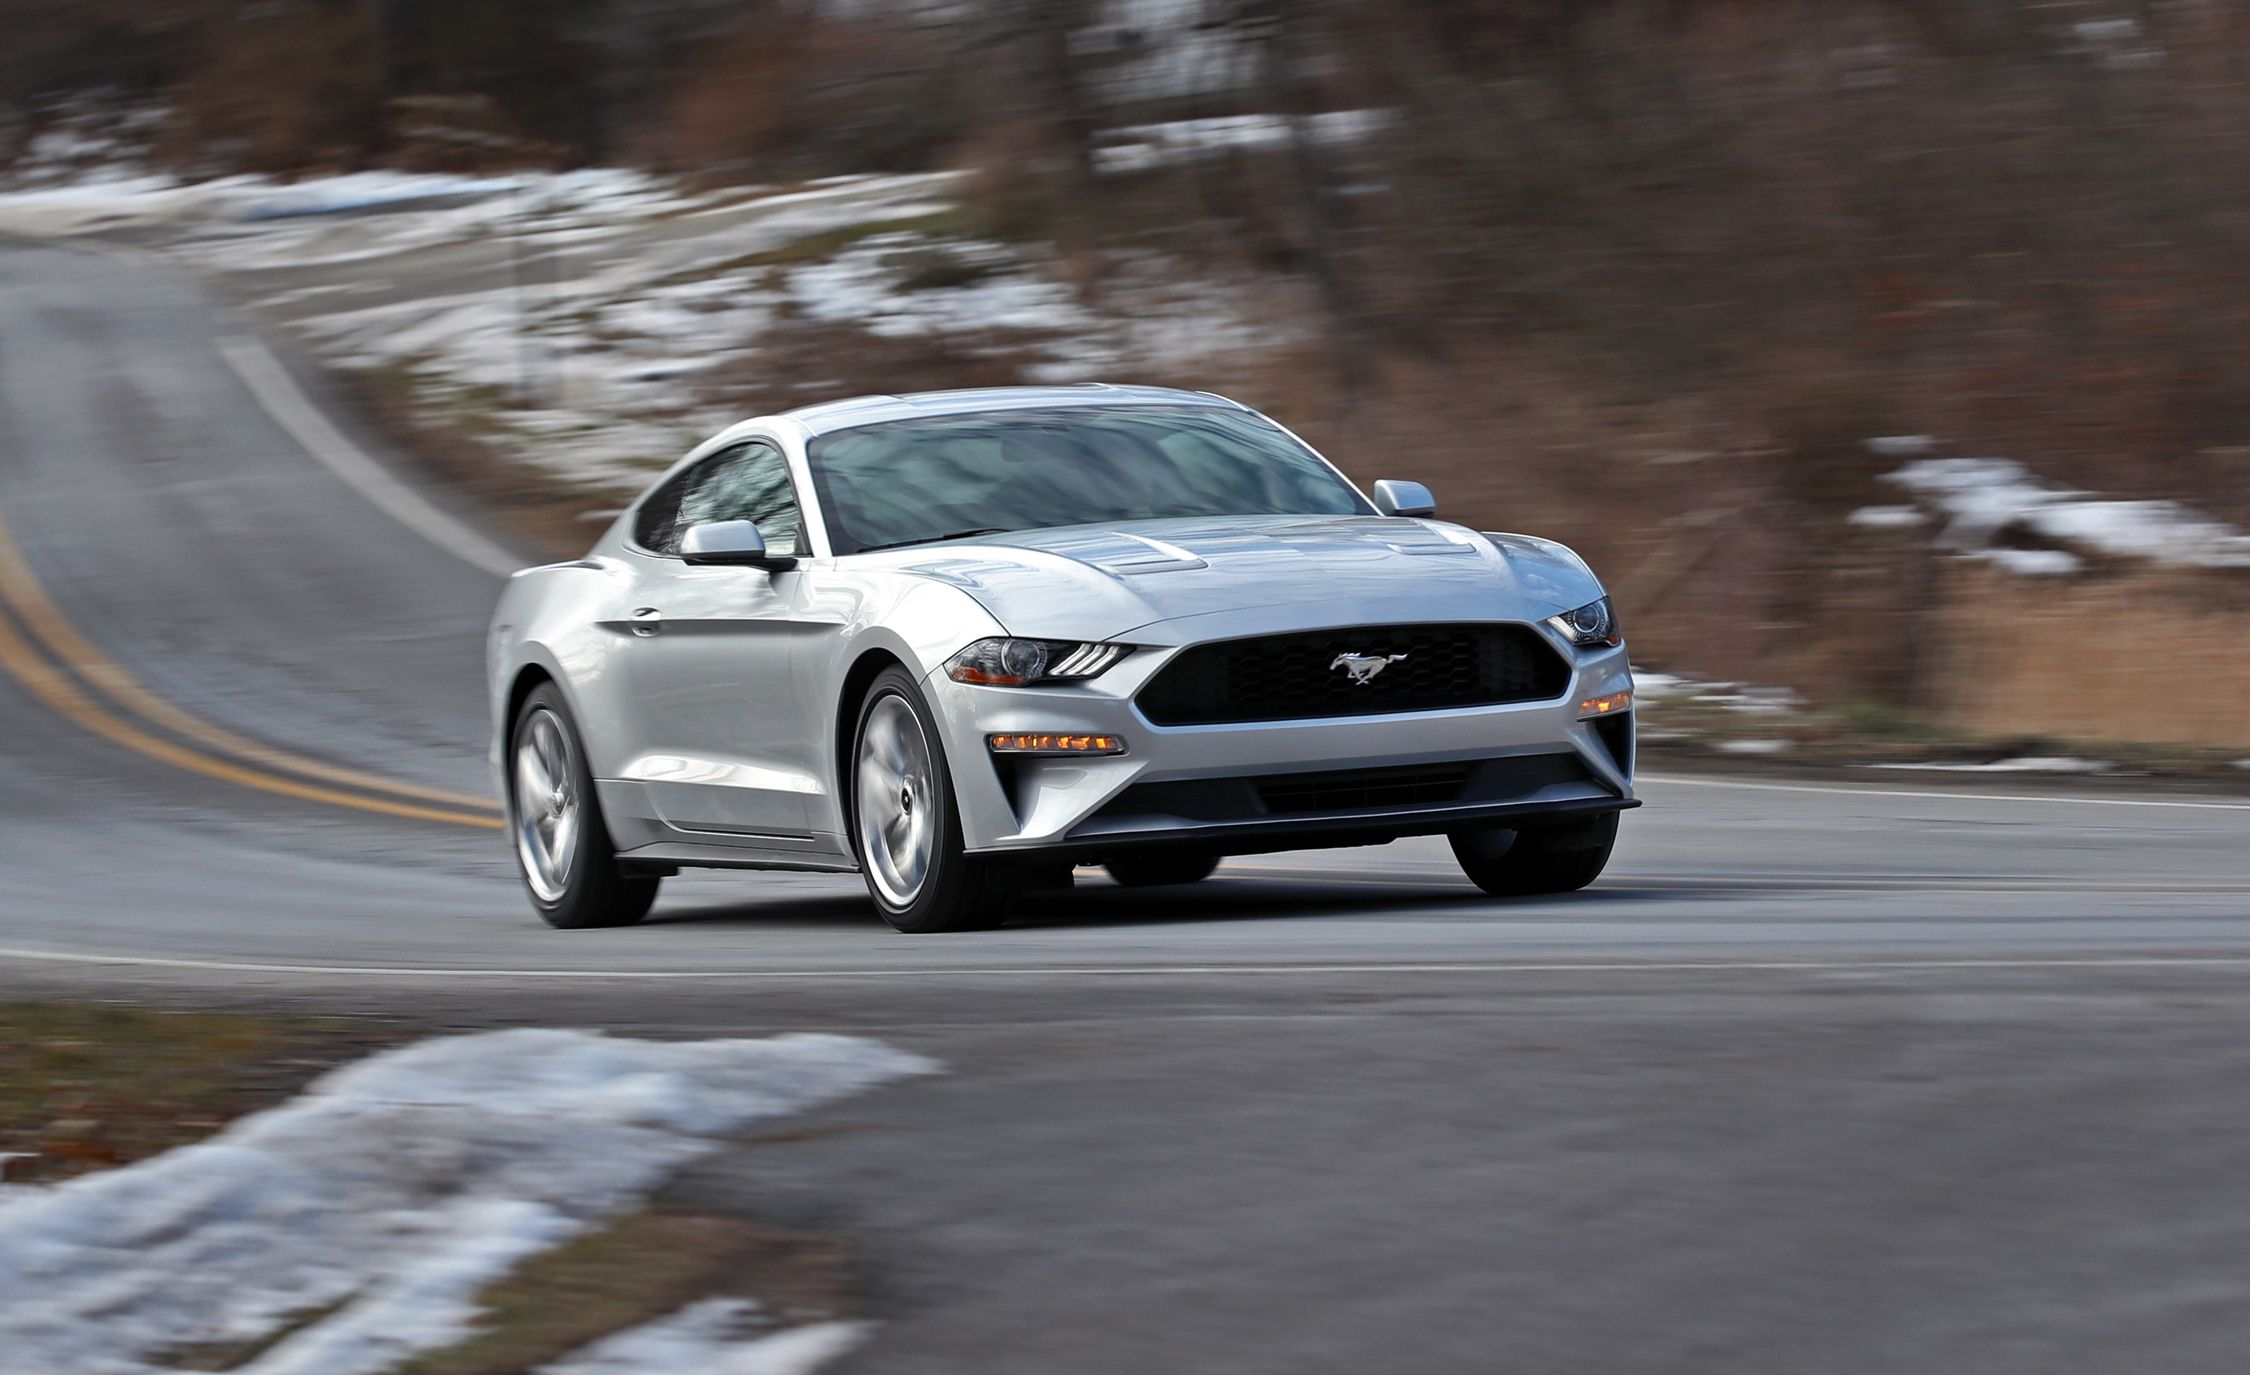 2018 ford mustang 2 3l ecoboost manual test does more torque help the turbo model